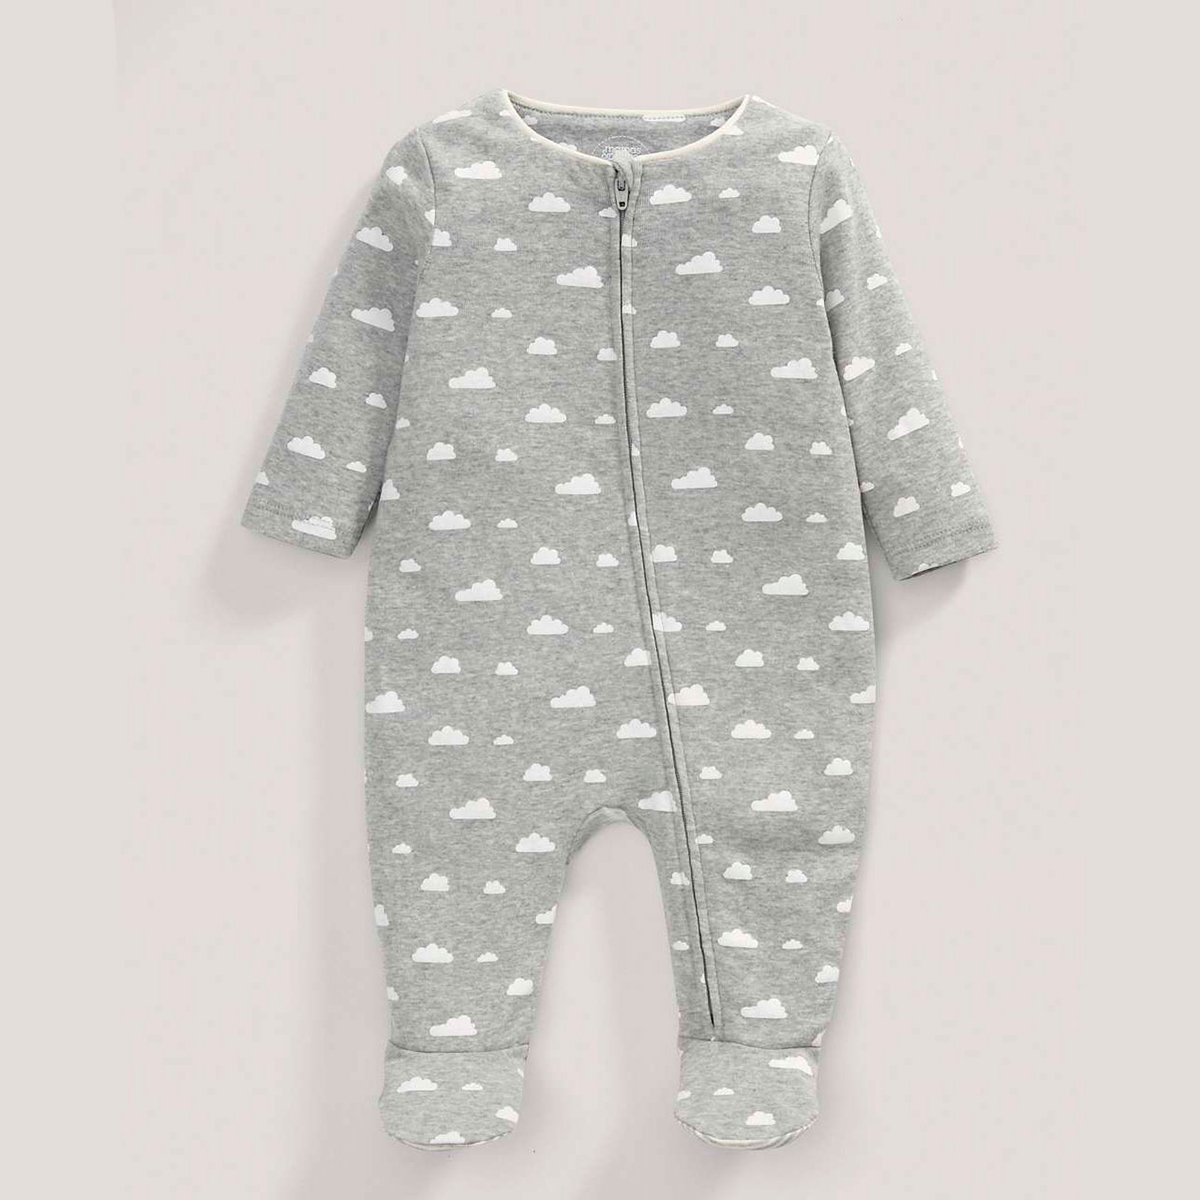 Mamas & Papas cloud grey sleepsuit unisex for newborns